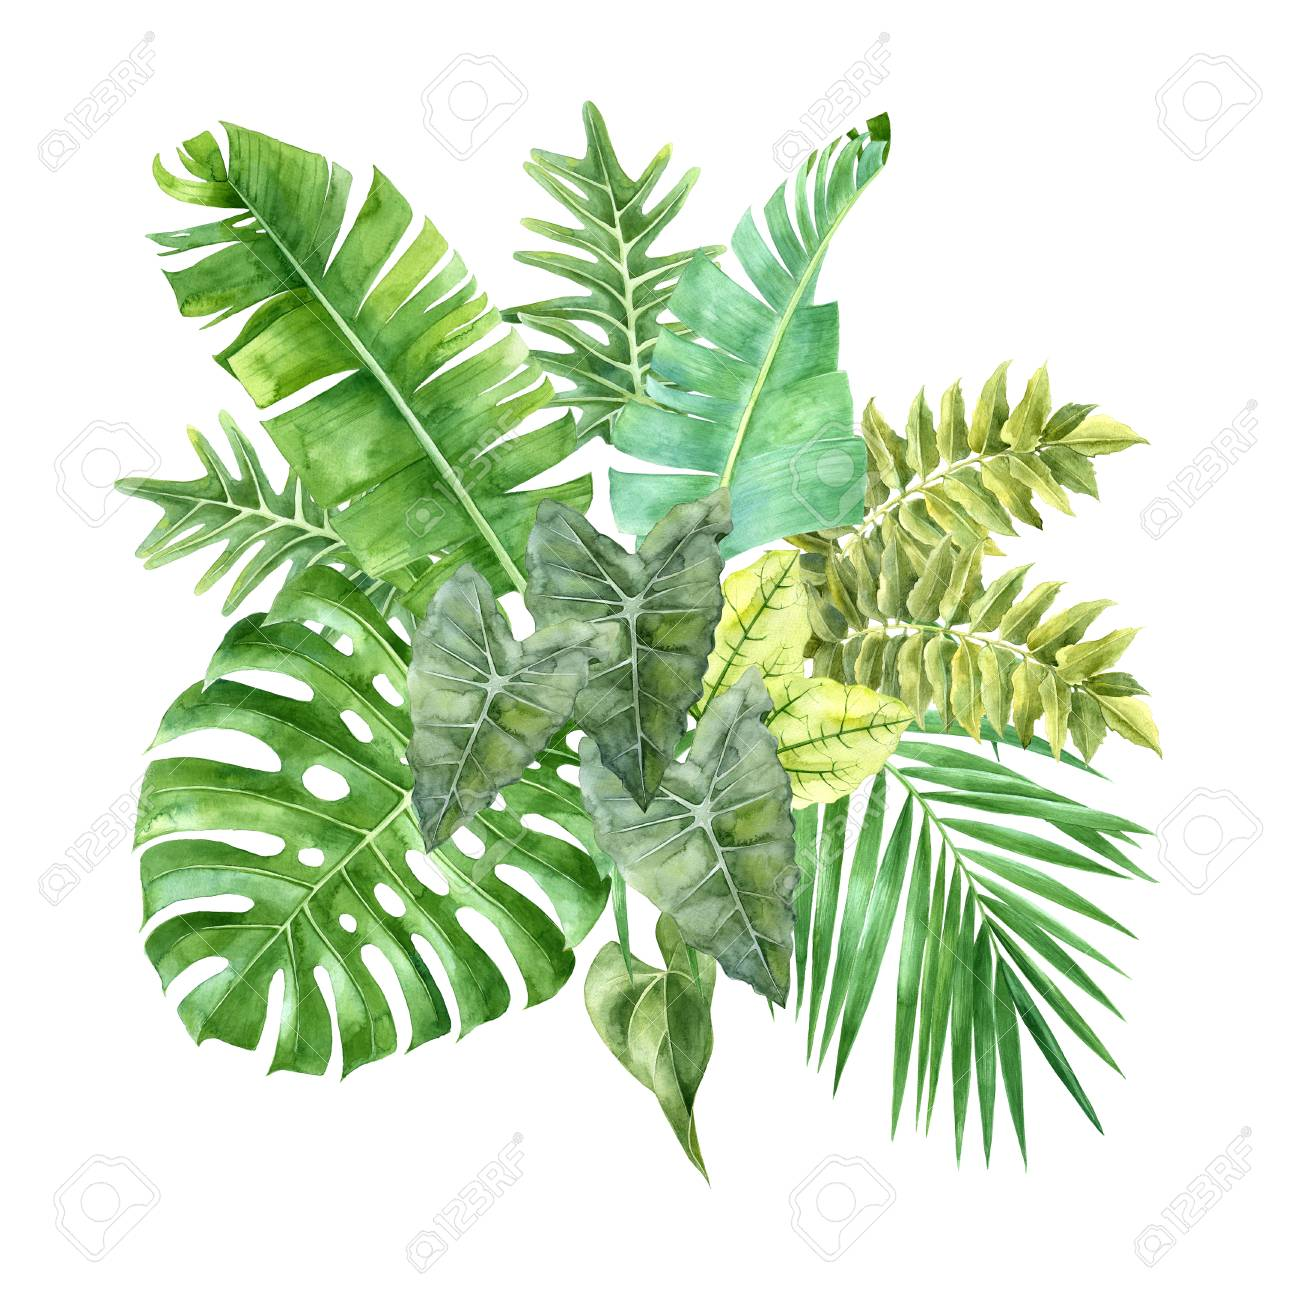 Watercolor tropical leaves isolated on white background - 82920992